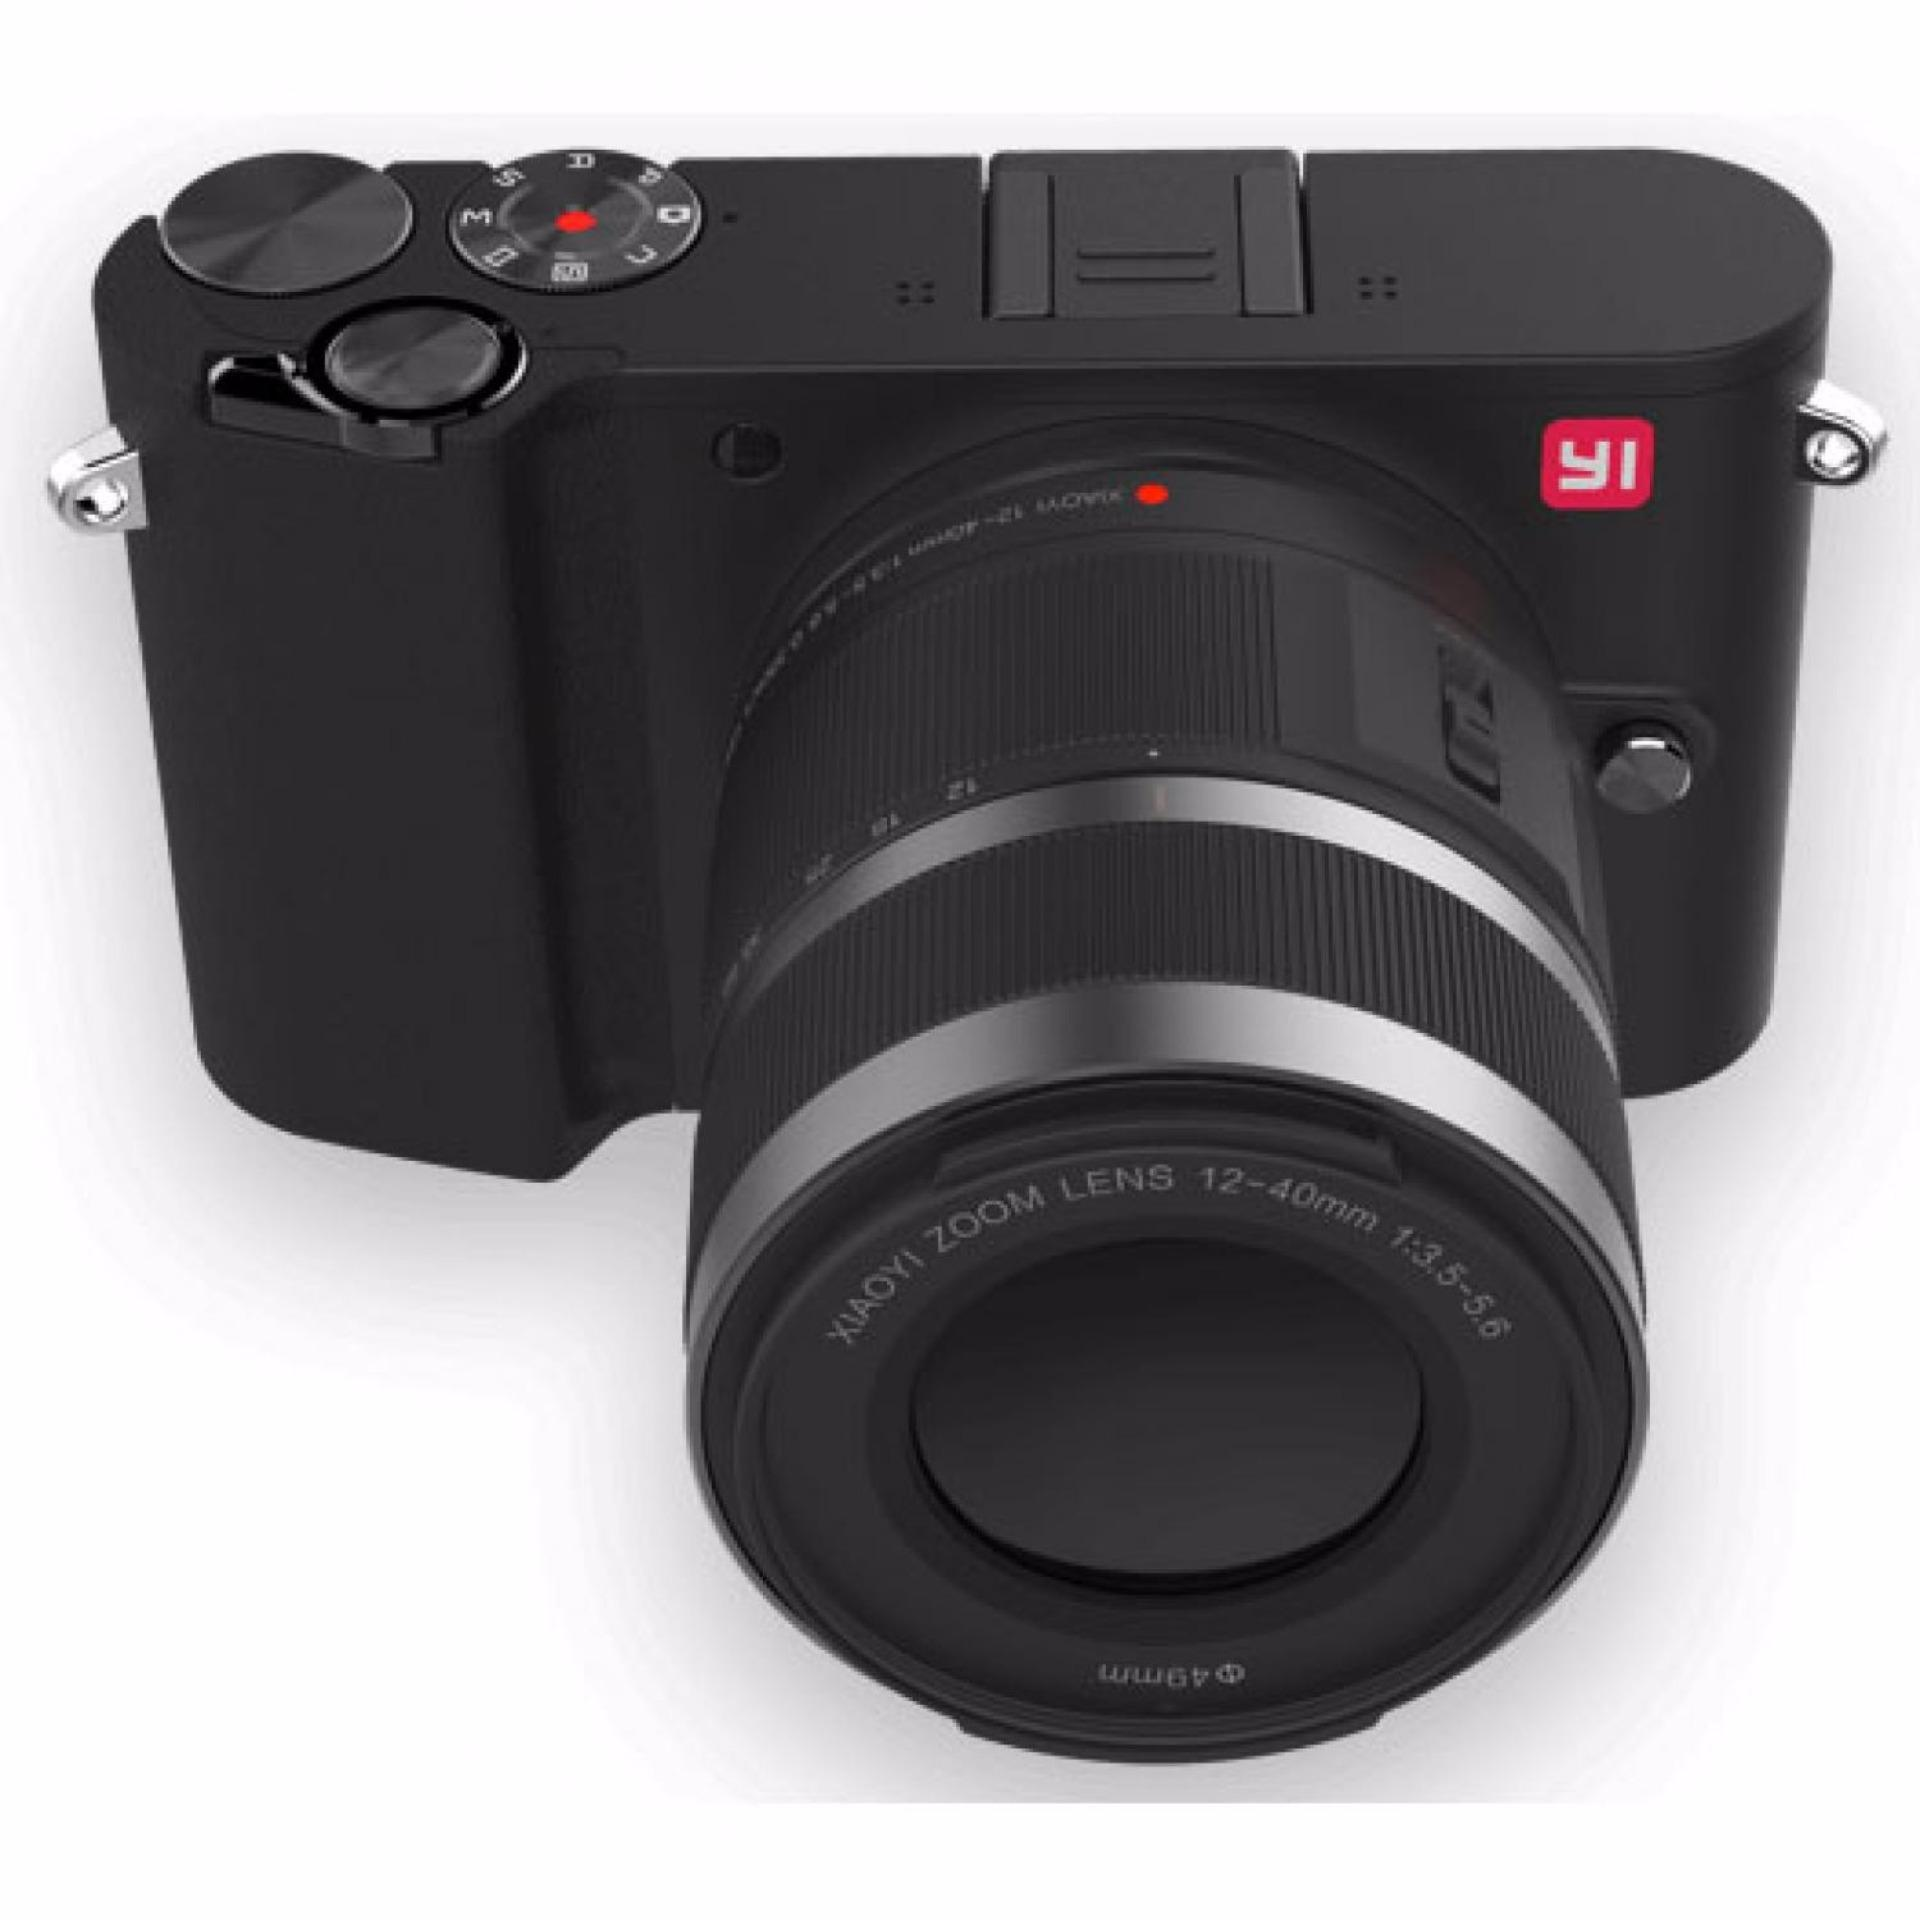 Promo Xiaomi Yi M1 Mirrorless Digital Camera 12 40Mm F3 5 5 6 Lens Indonesia